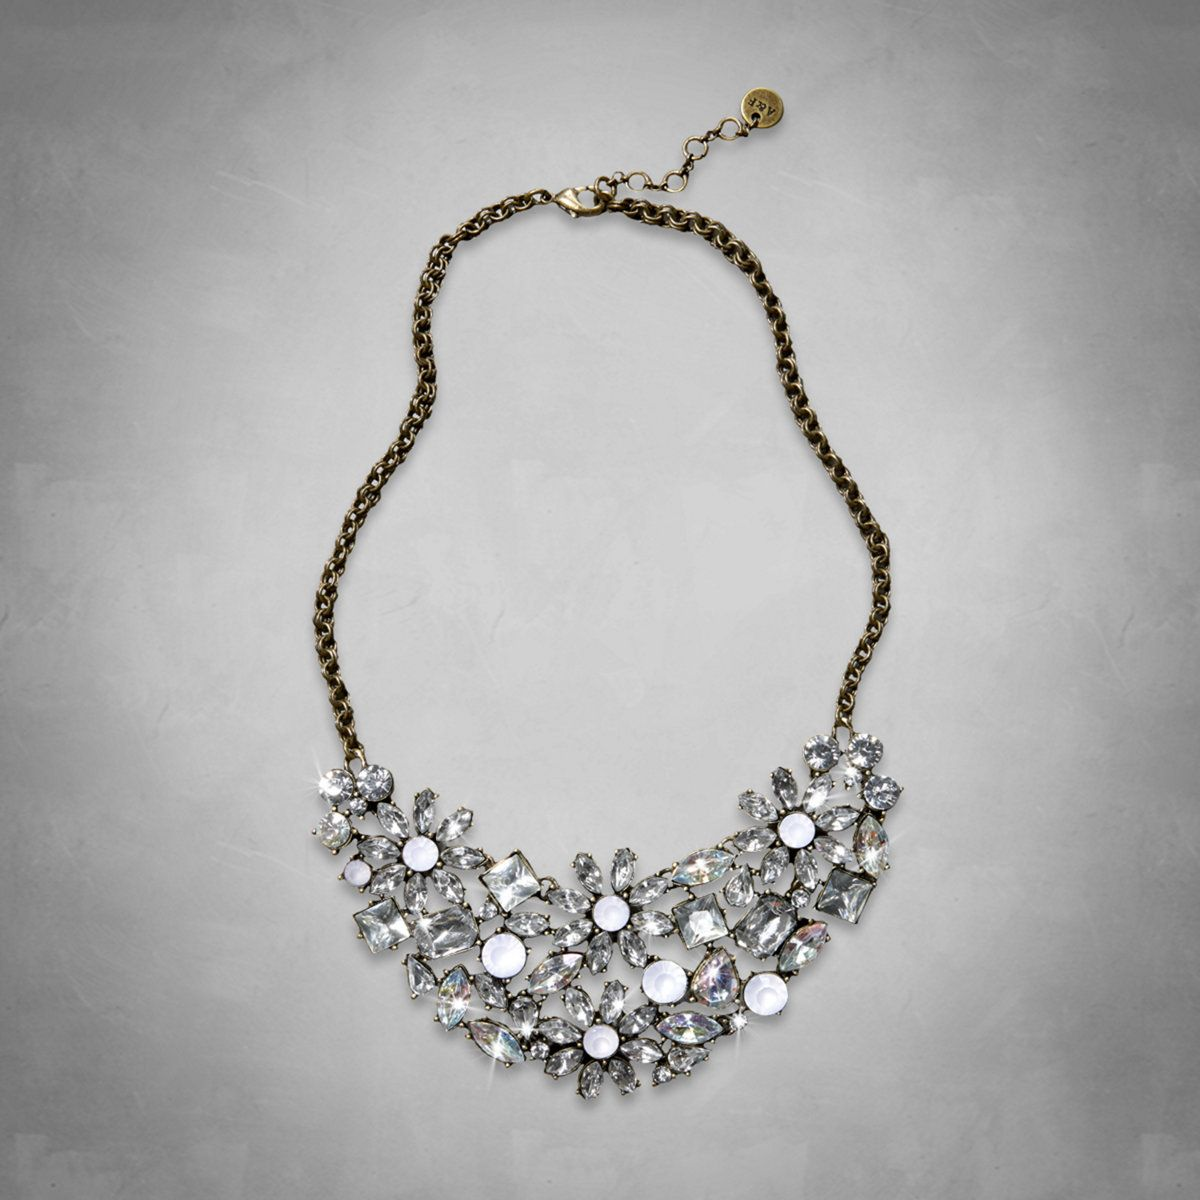 Abercrombie Accessories Abercrombie Accessories Abercrombie Womens Abercrombie Couple Abercrombie Womens: Womens Shine Statement Necklace